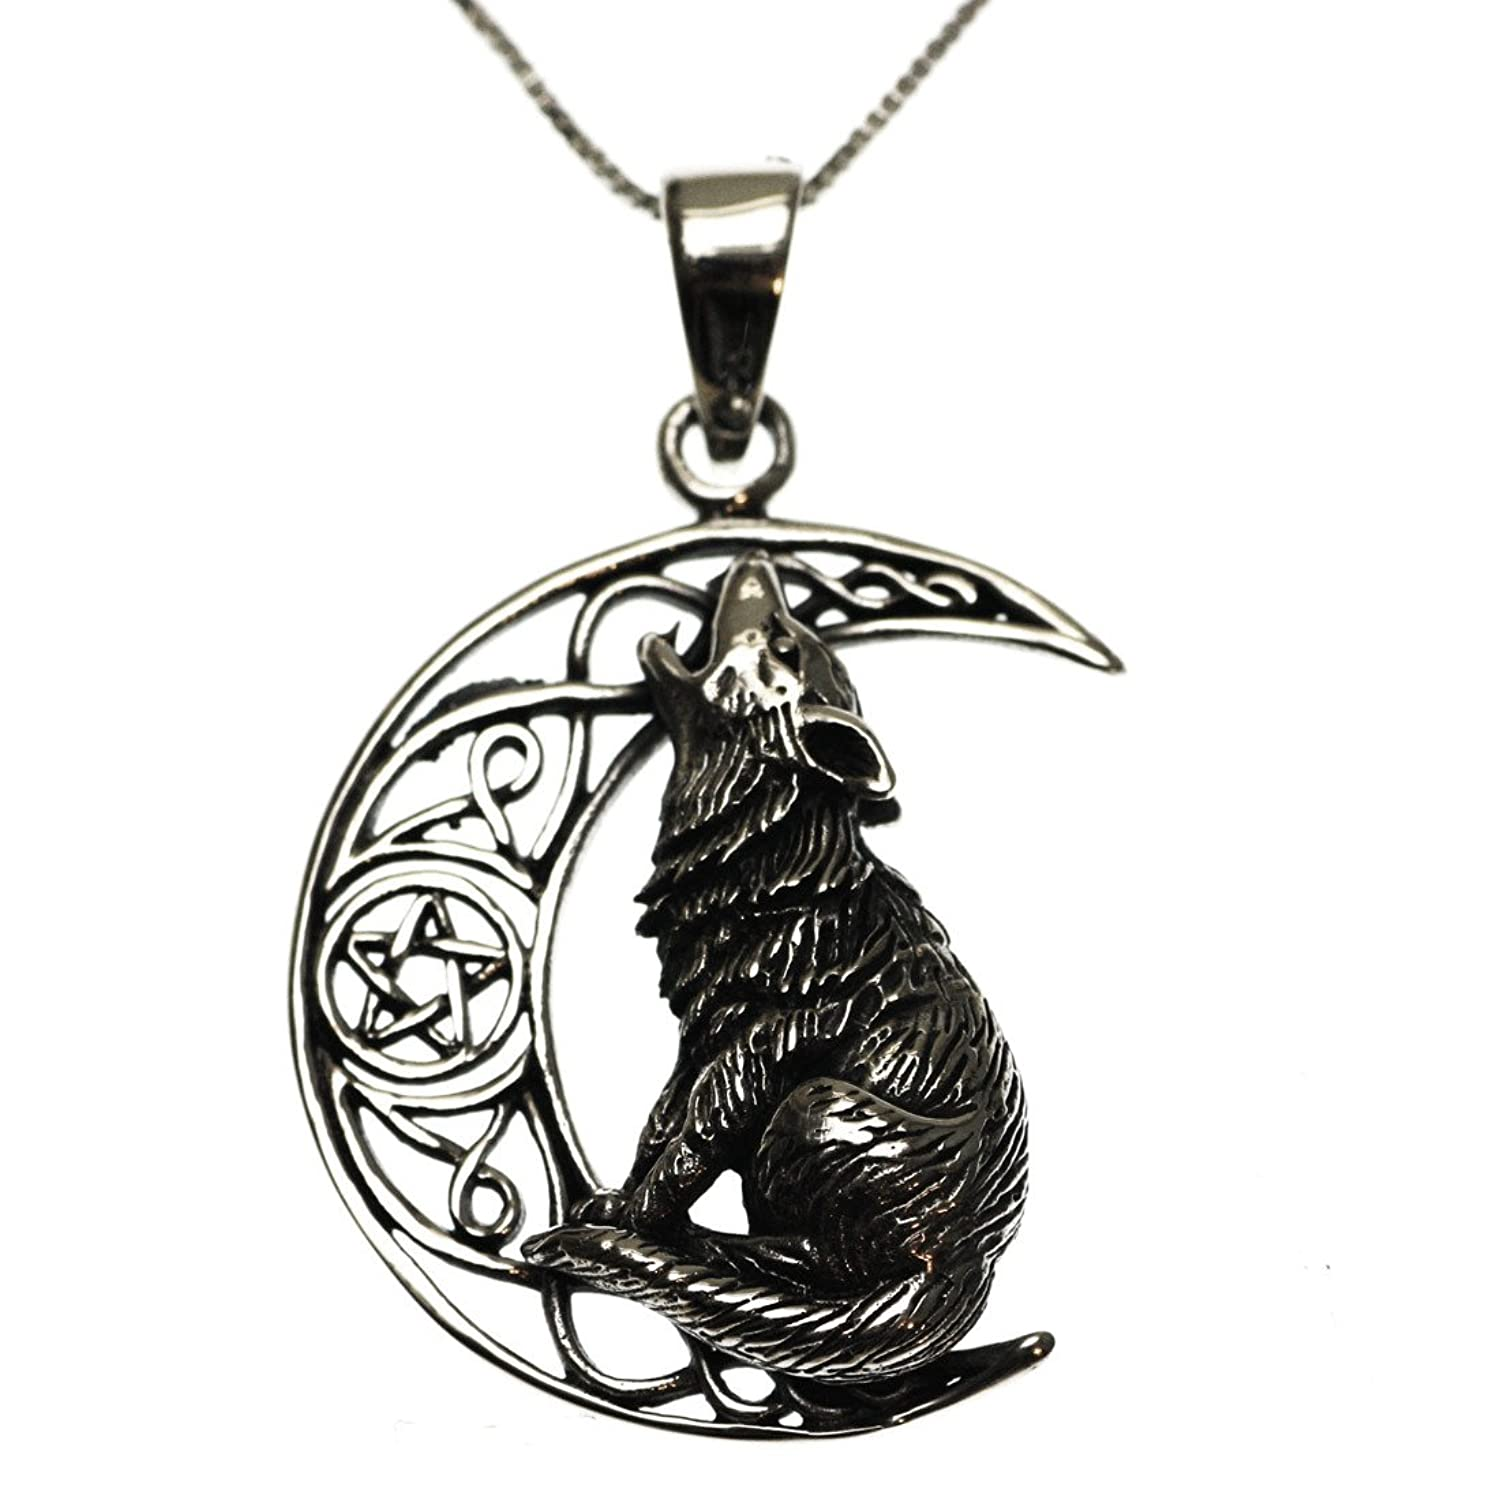 Sterling silver 925 wolf moon pendant necklace amazon jewellery mozeypictures Choice Image